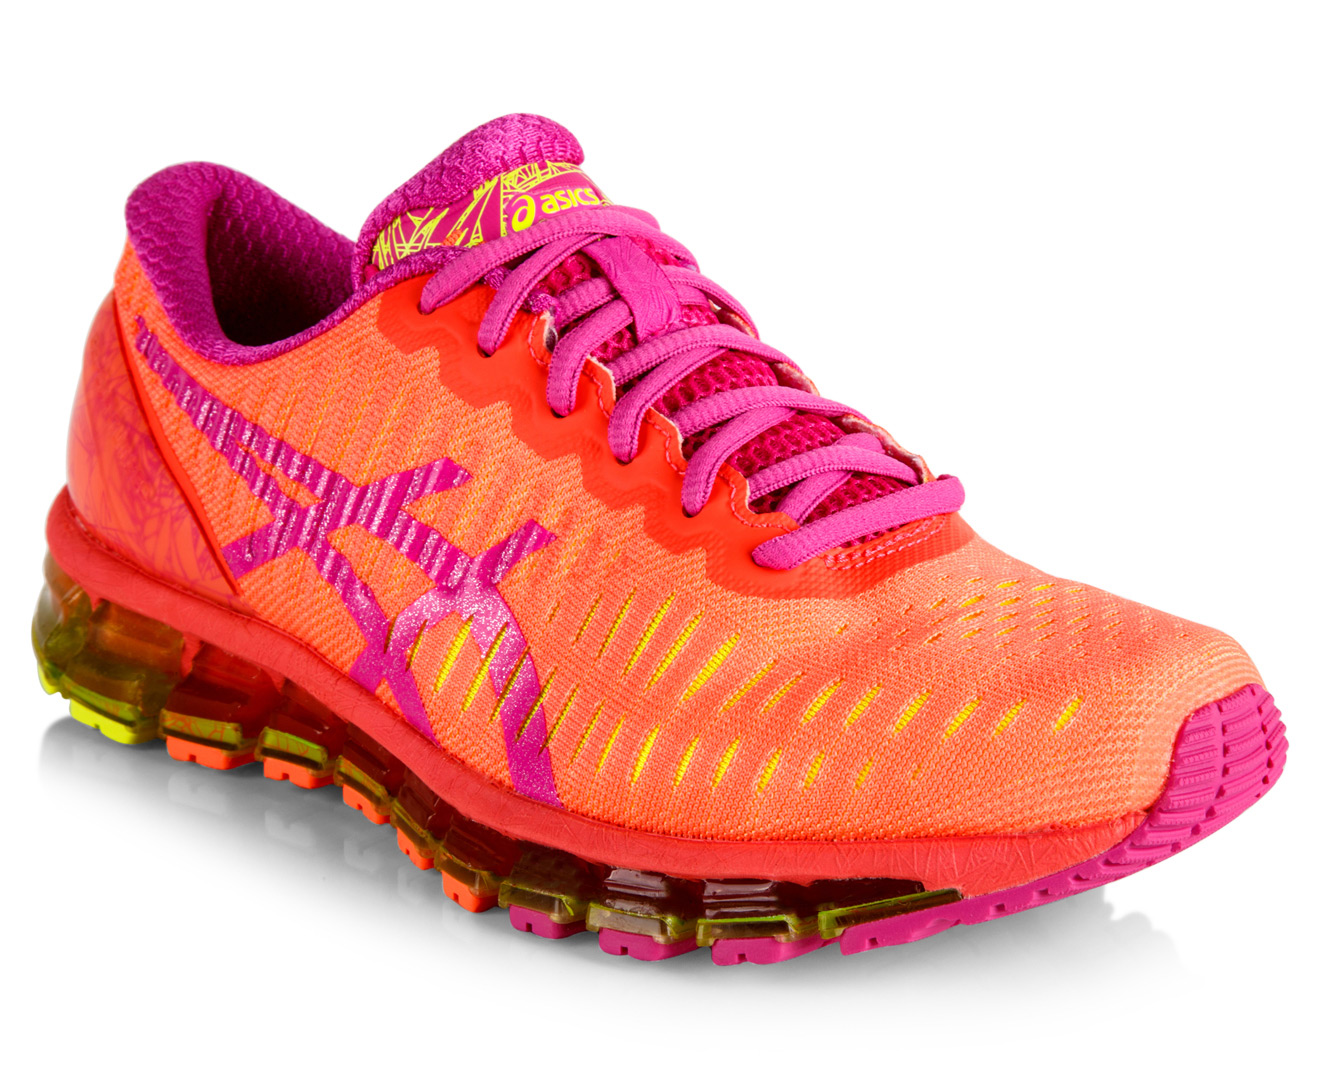 on sale 958ab cc41a ASICS Women s GEL-Quantum 360 Shoe - Coral Pink Glow Flash Yellow    Catch.com.au